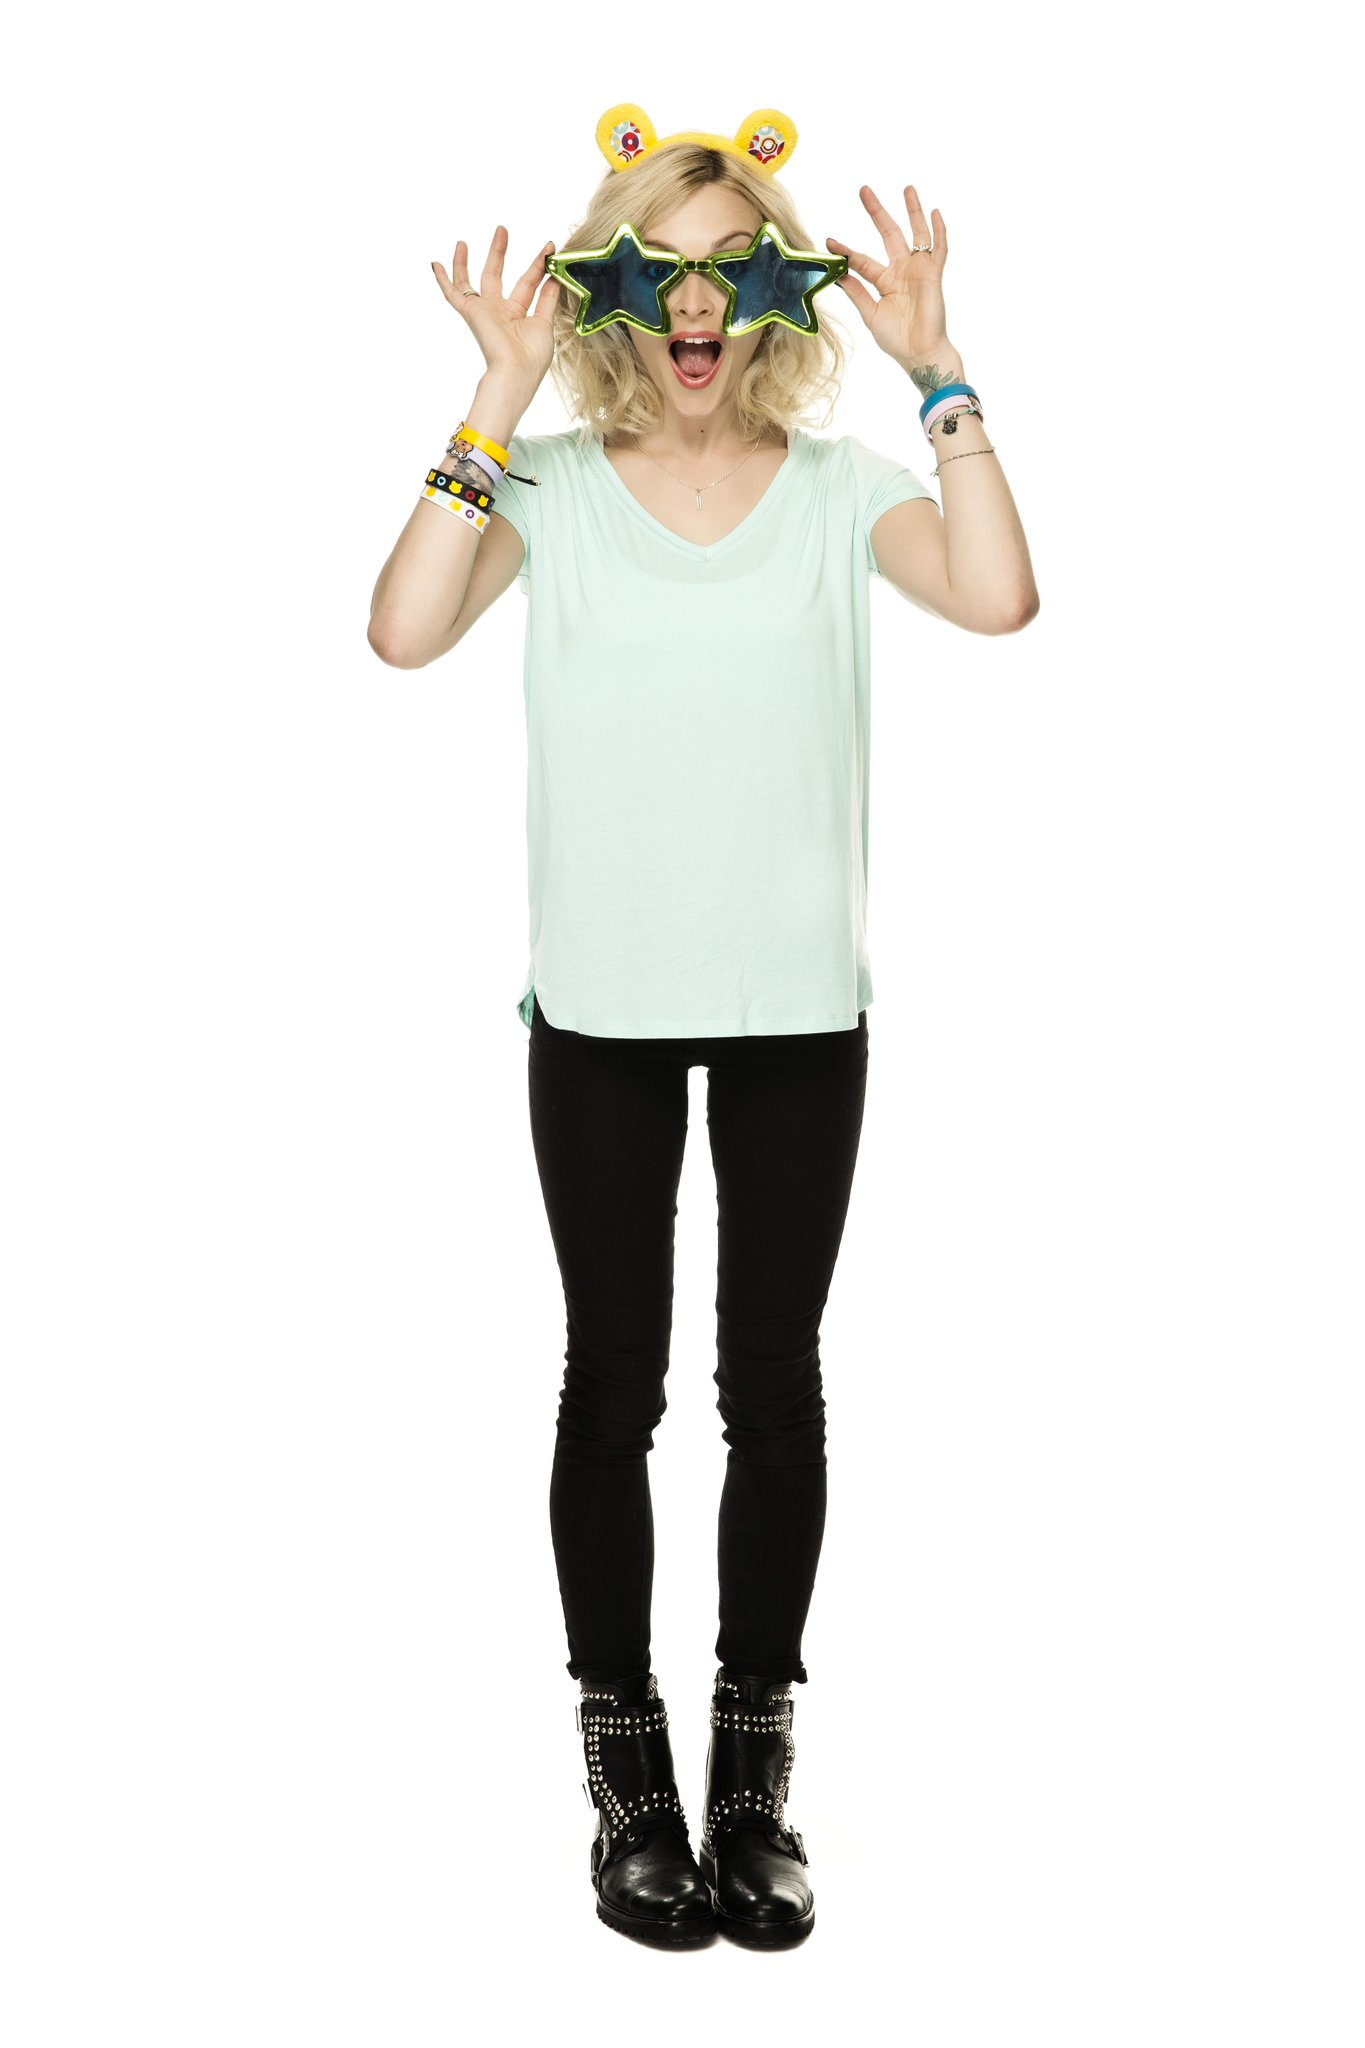 RT @BBCCiN: Get your fancy dress on with @Fearnecotton #BeAHero & get involved at http://t.co/2G4TFp9p2Q http://t.co/NgoP2ocYPy